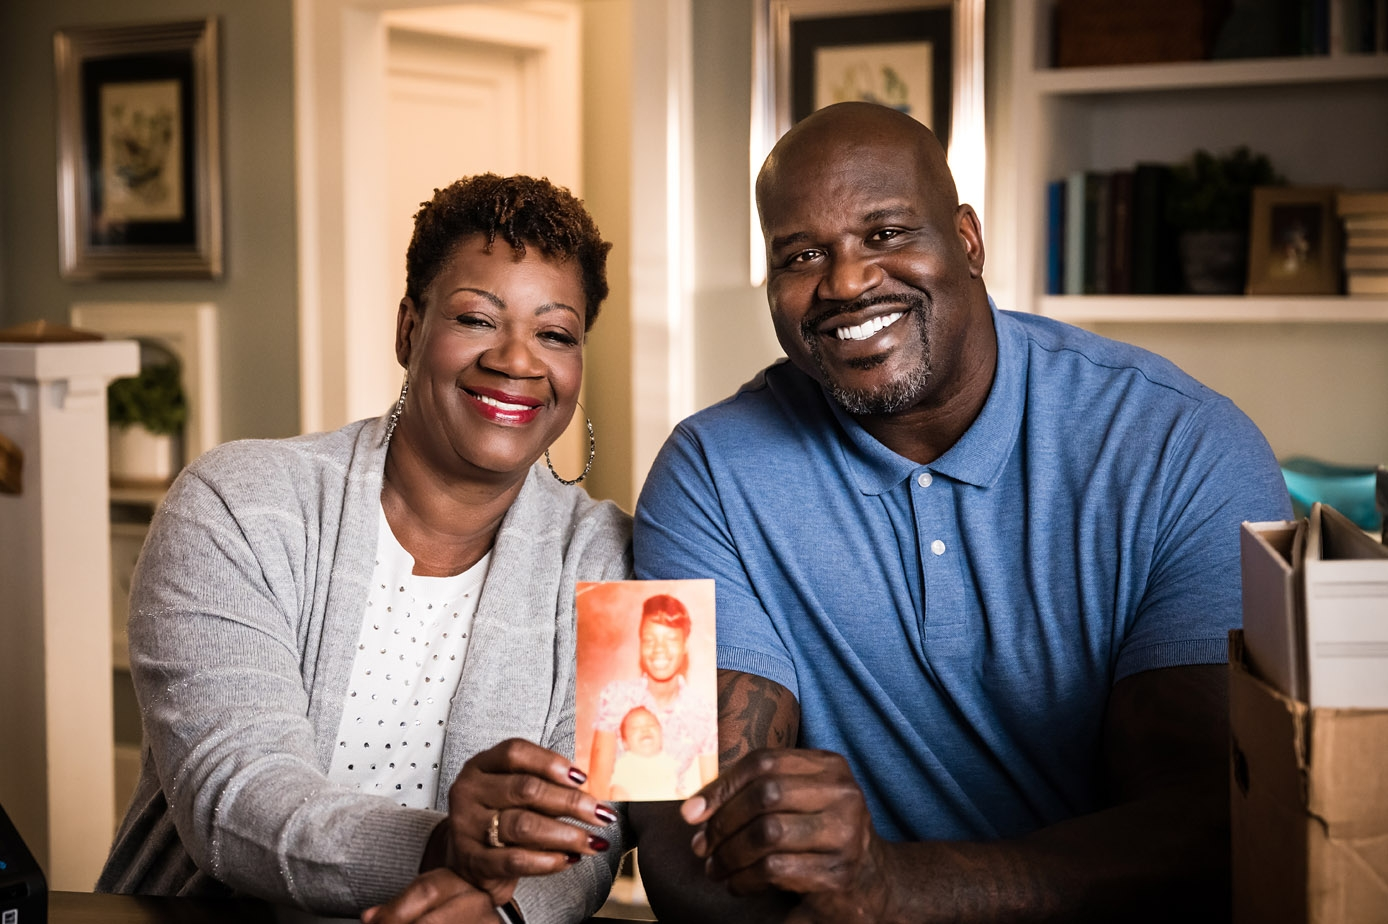 """Epson Launches """"Preserve What's Priceless"""" Ad Campaign Featuring Adorable Mother and Son Duo, Lucille and Shaquille O'Neal 